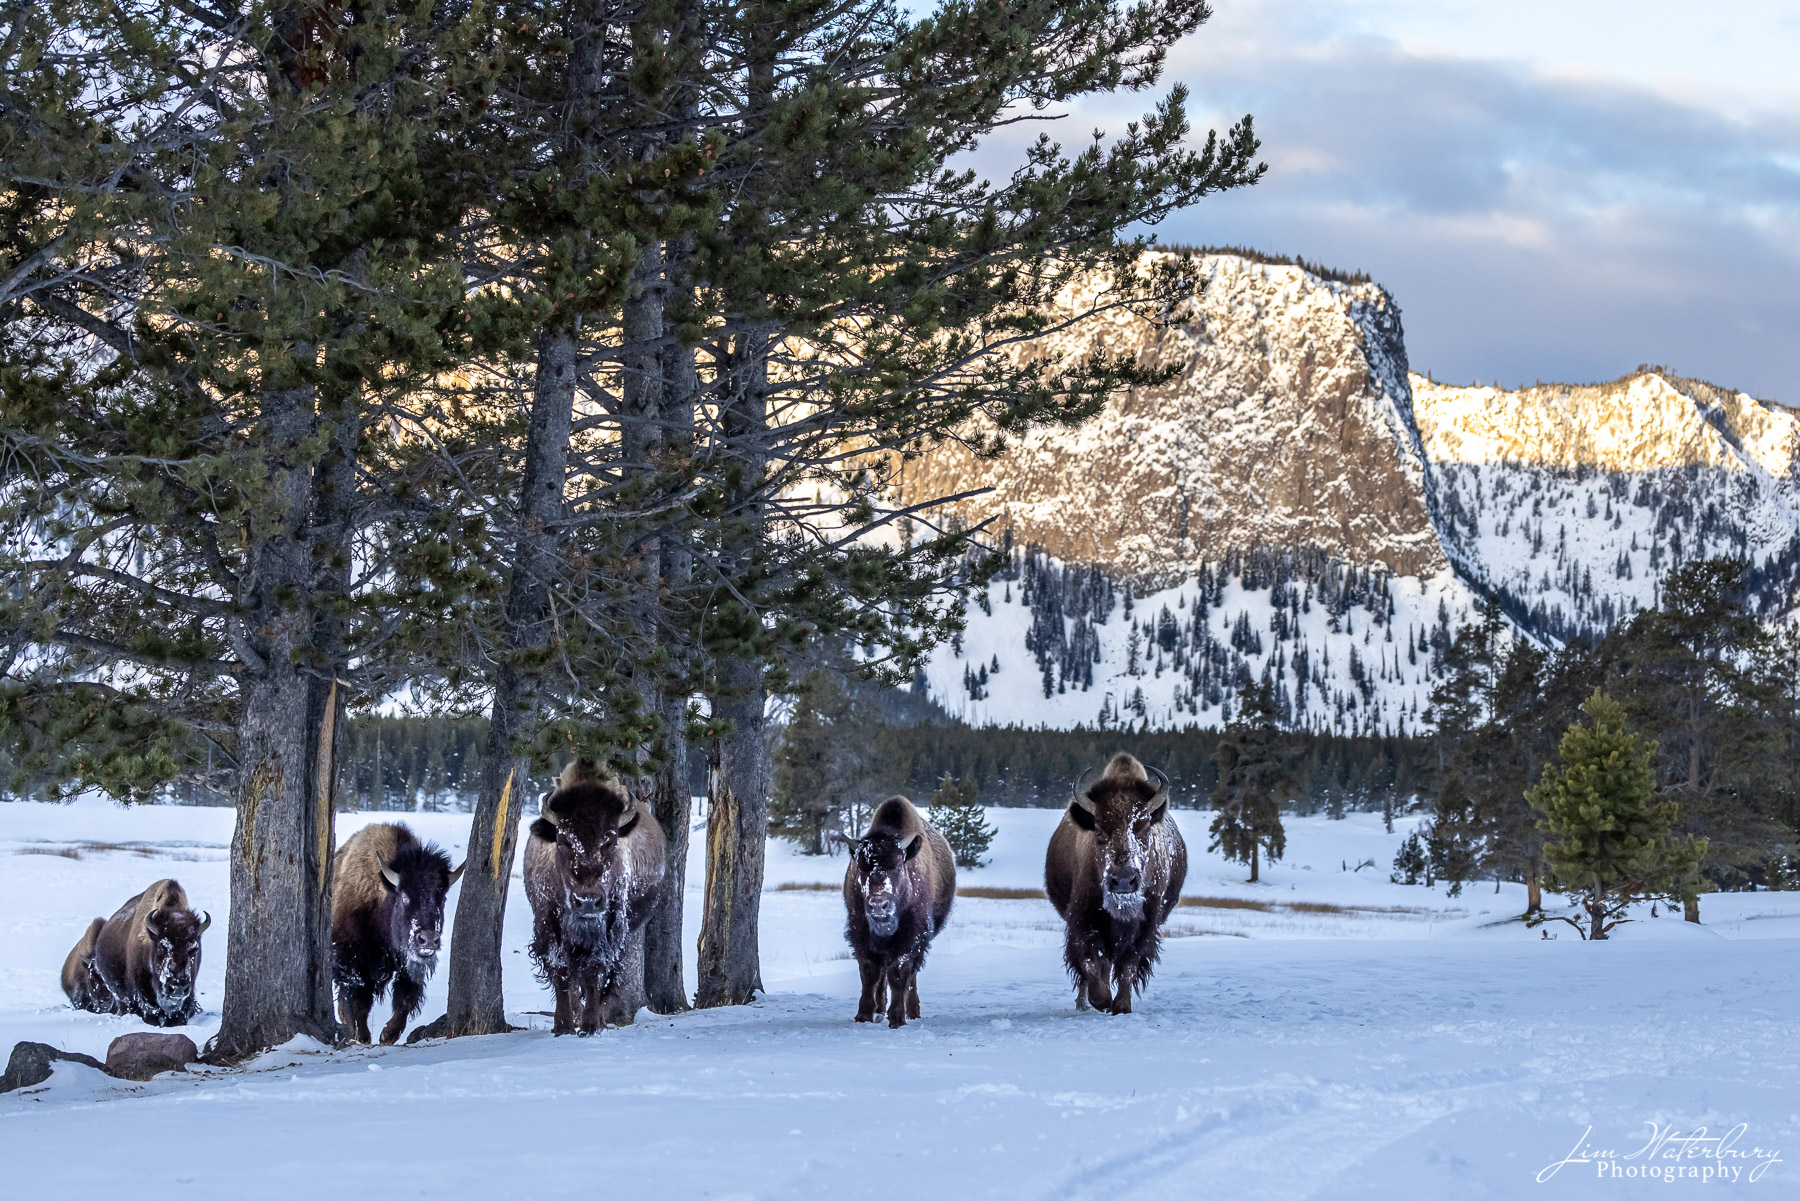 A herd of bison make their way through the trees near the west entrance to Yellowstone.